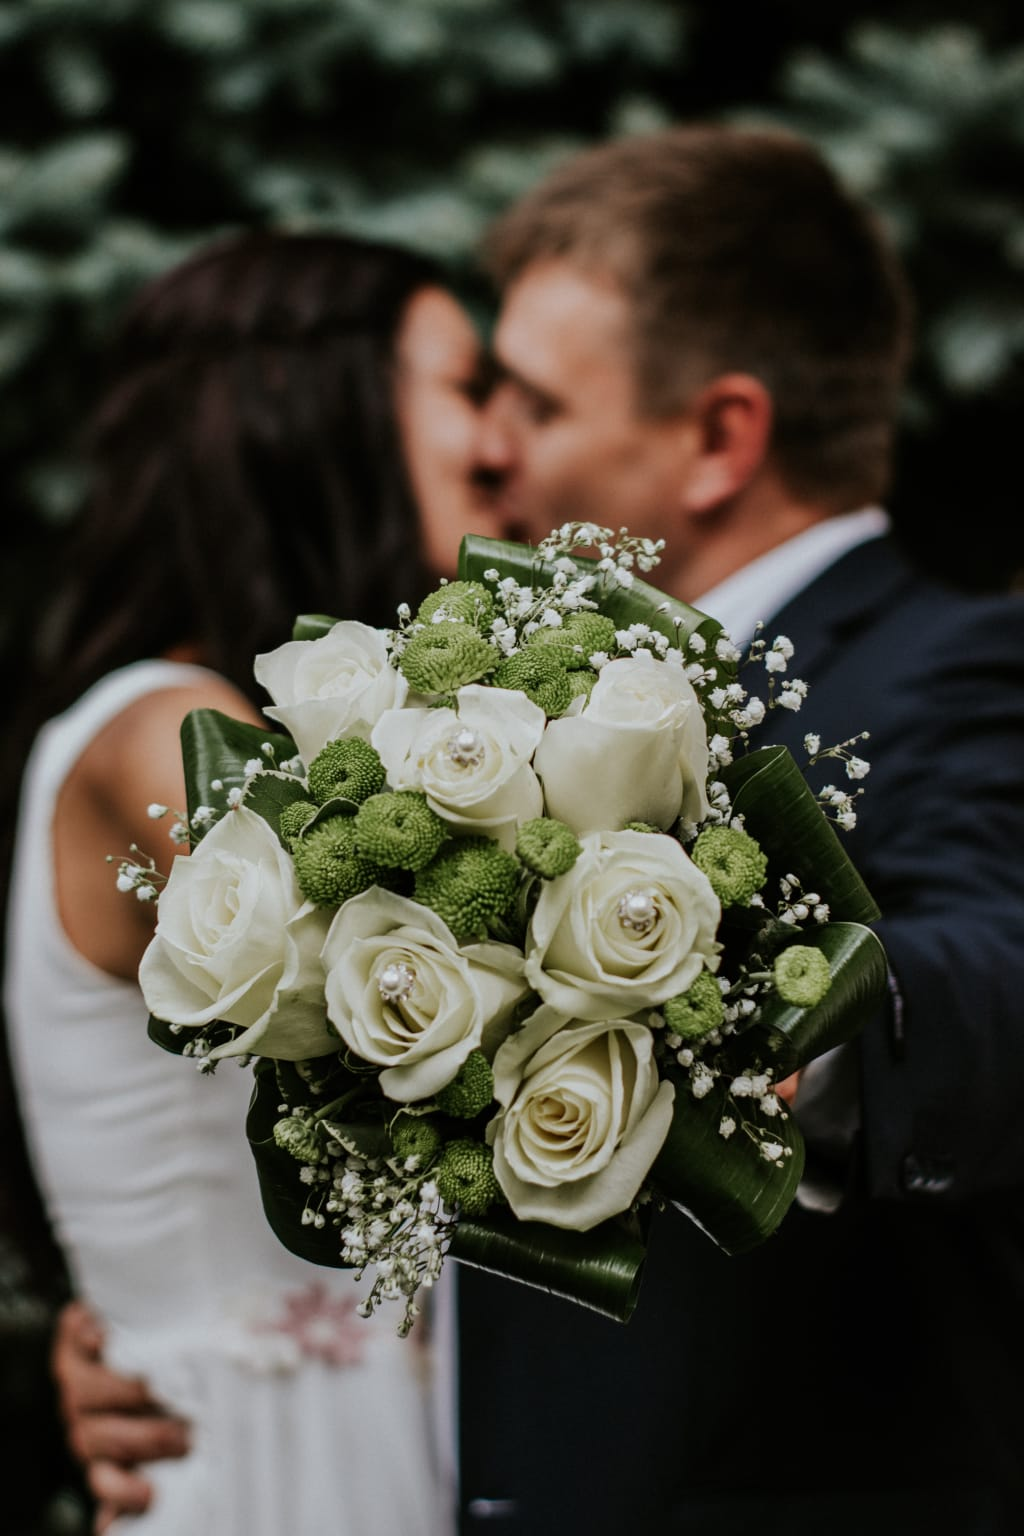 Getting Married Soon? 5 Things to Know